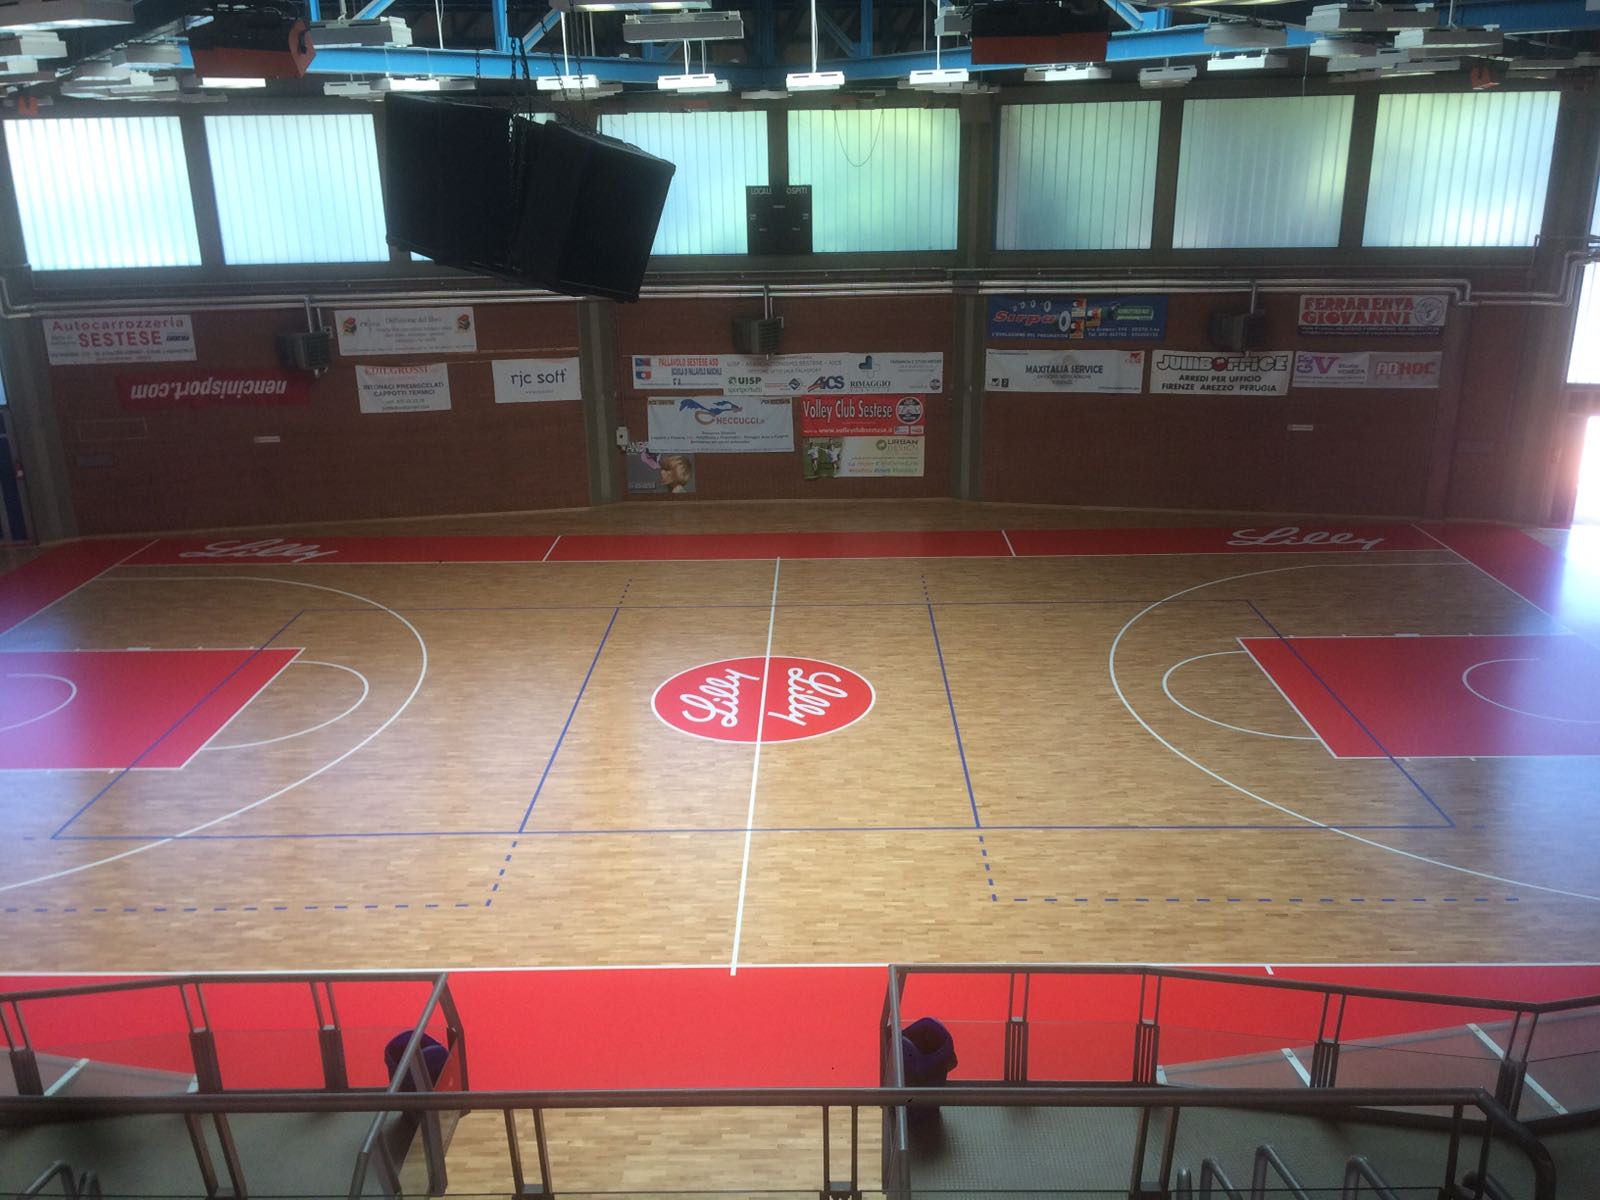 The finished flooring. A new face for the Sesto Fiorentino sports hall